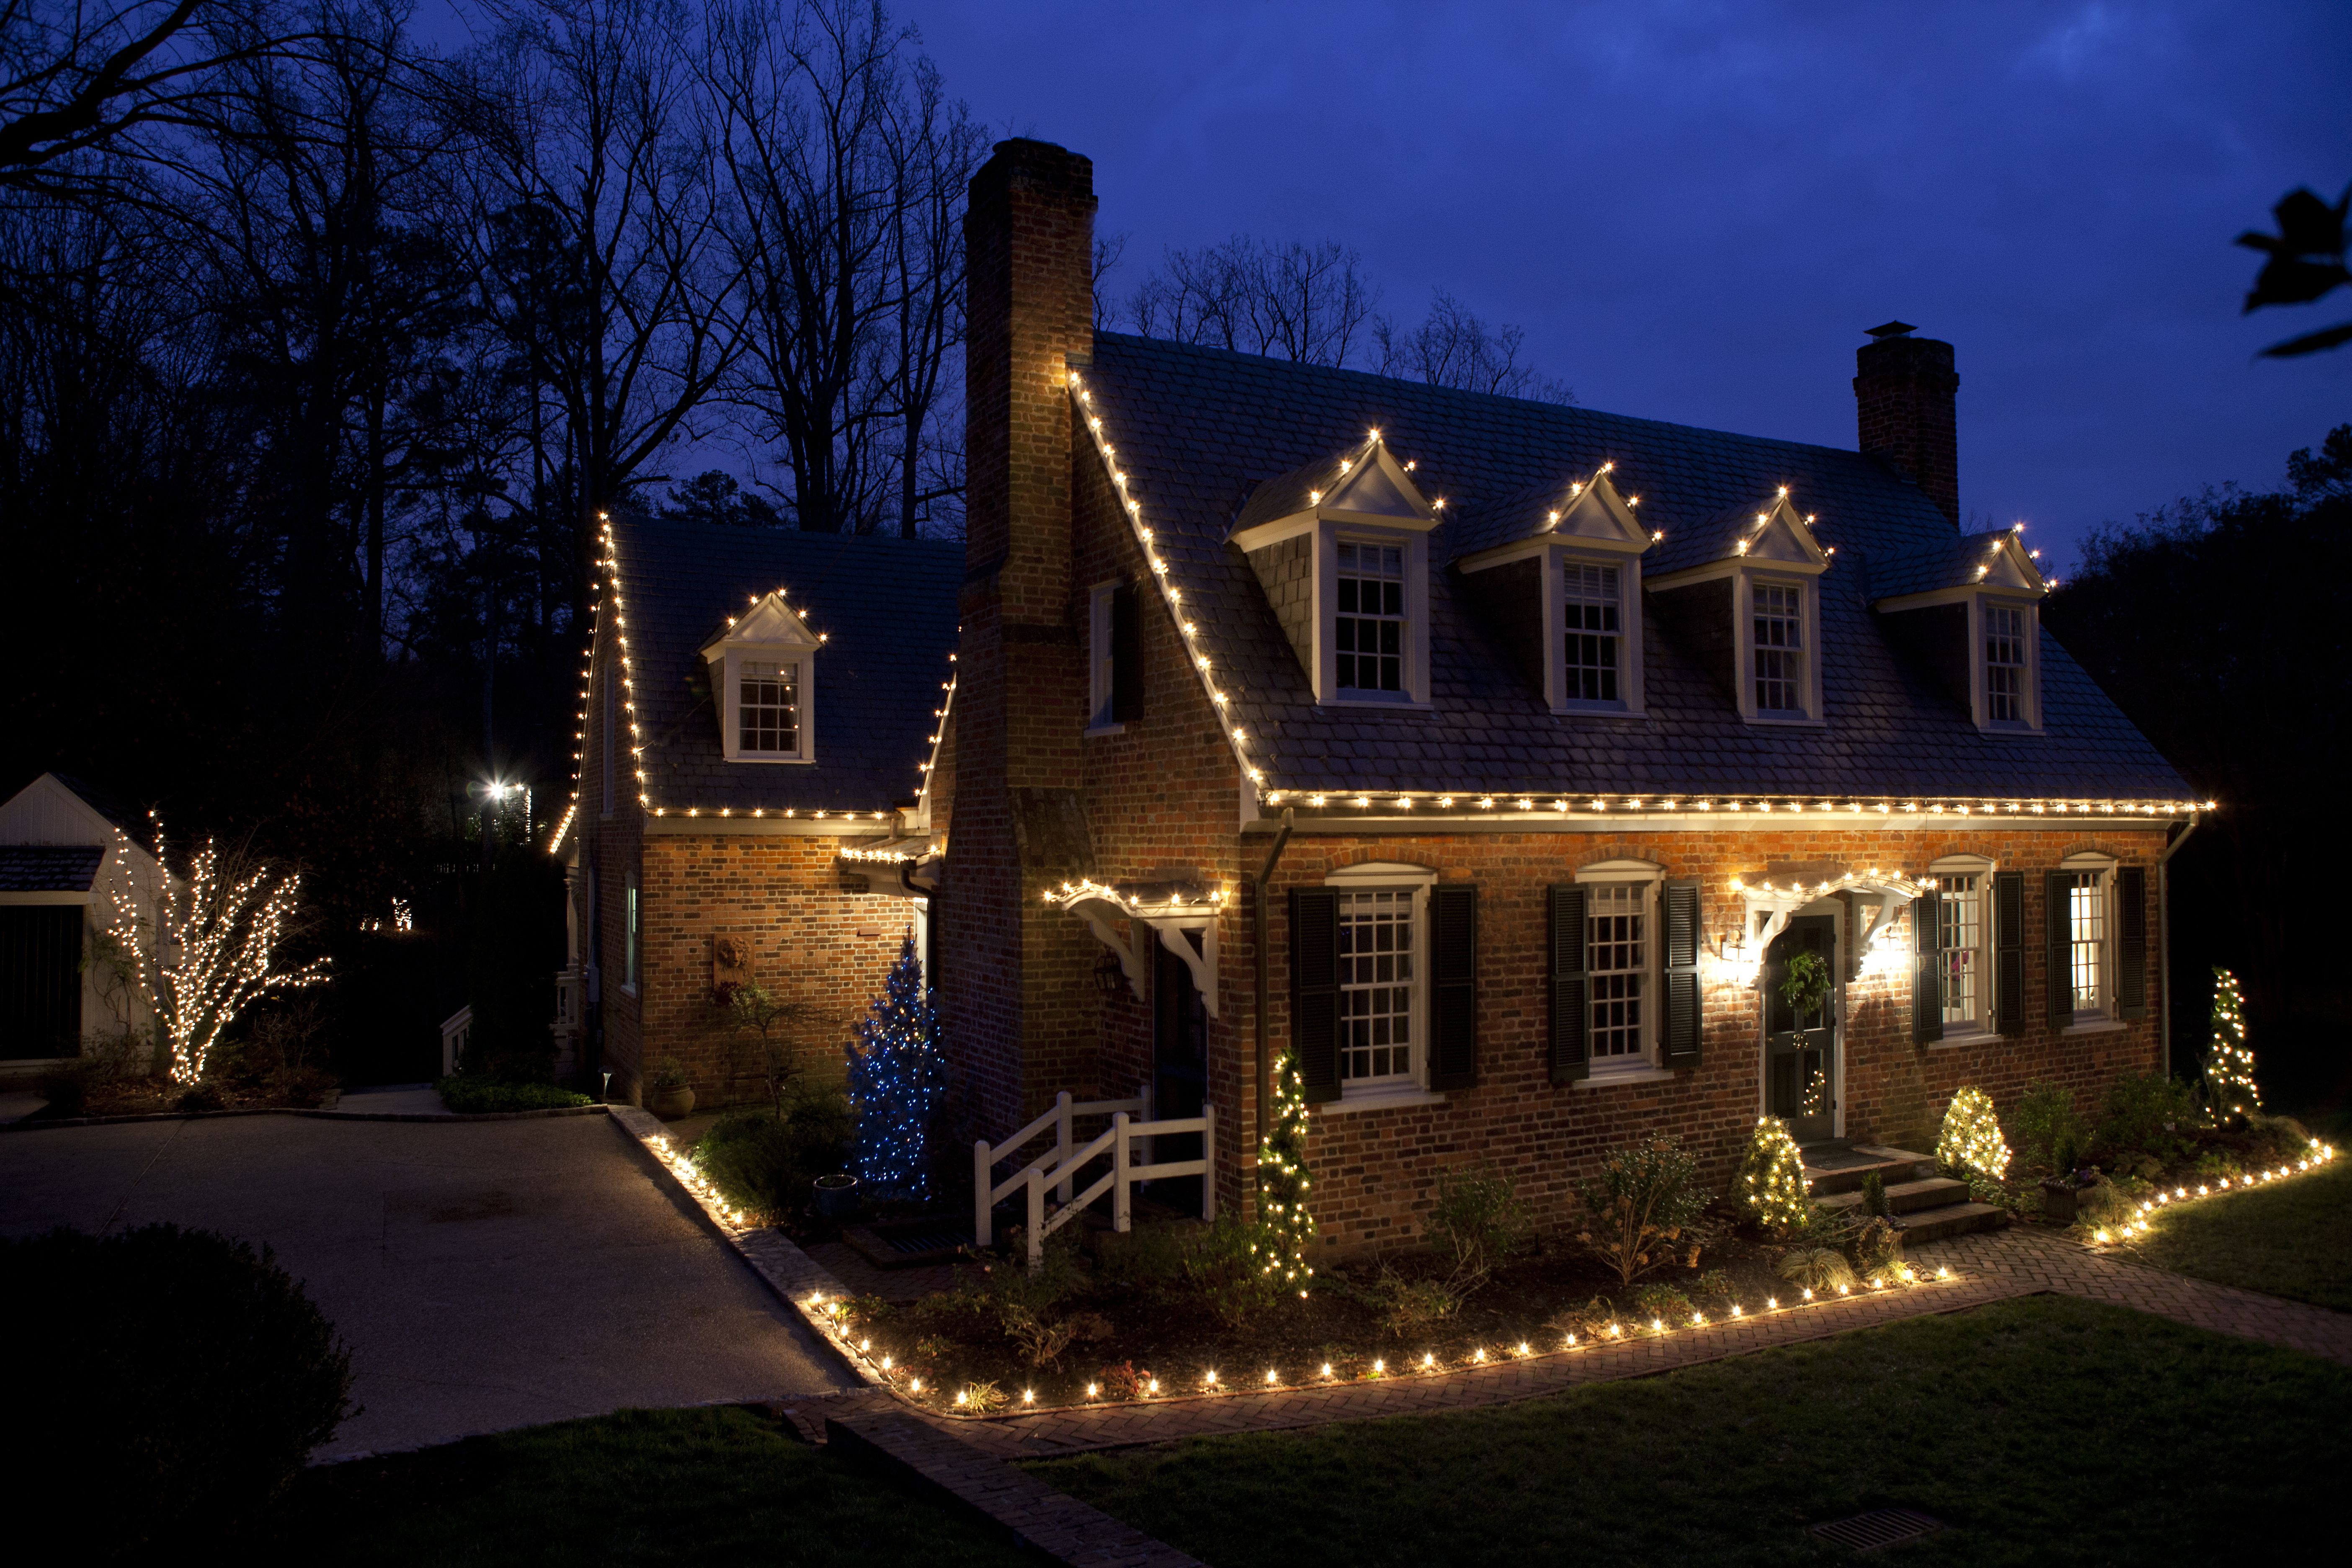 How to hang christmas lights - Hang Christmas Lights On Roof